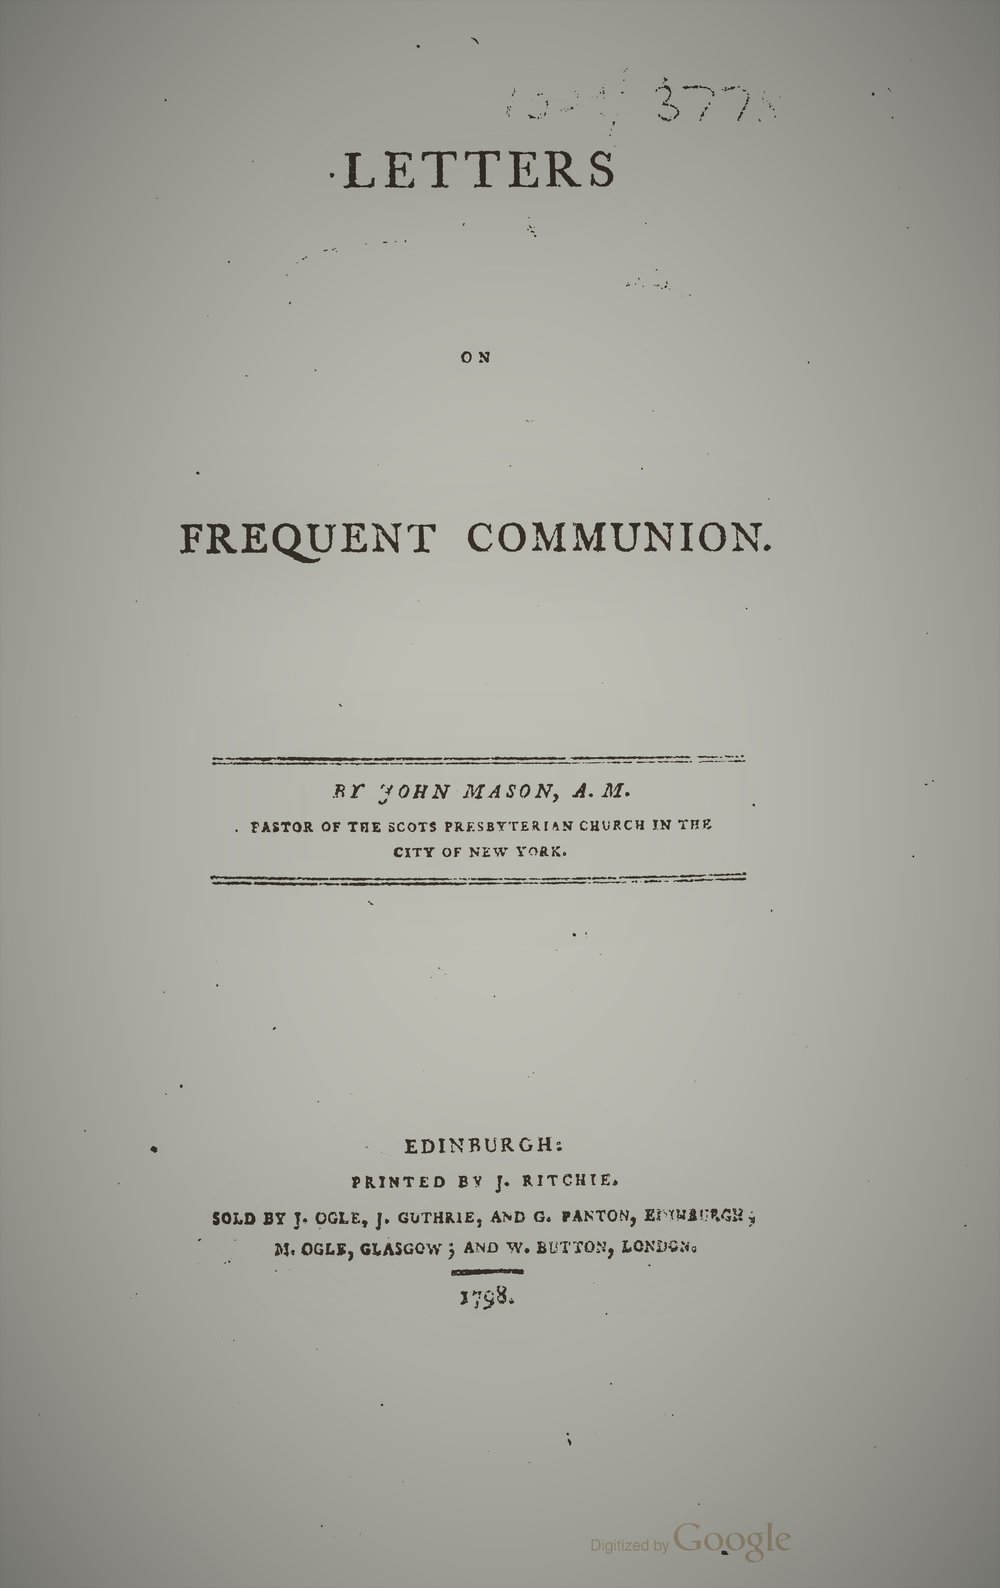 Mason, John - Letters on Frequent Communion.jpg